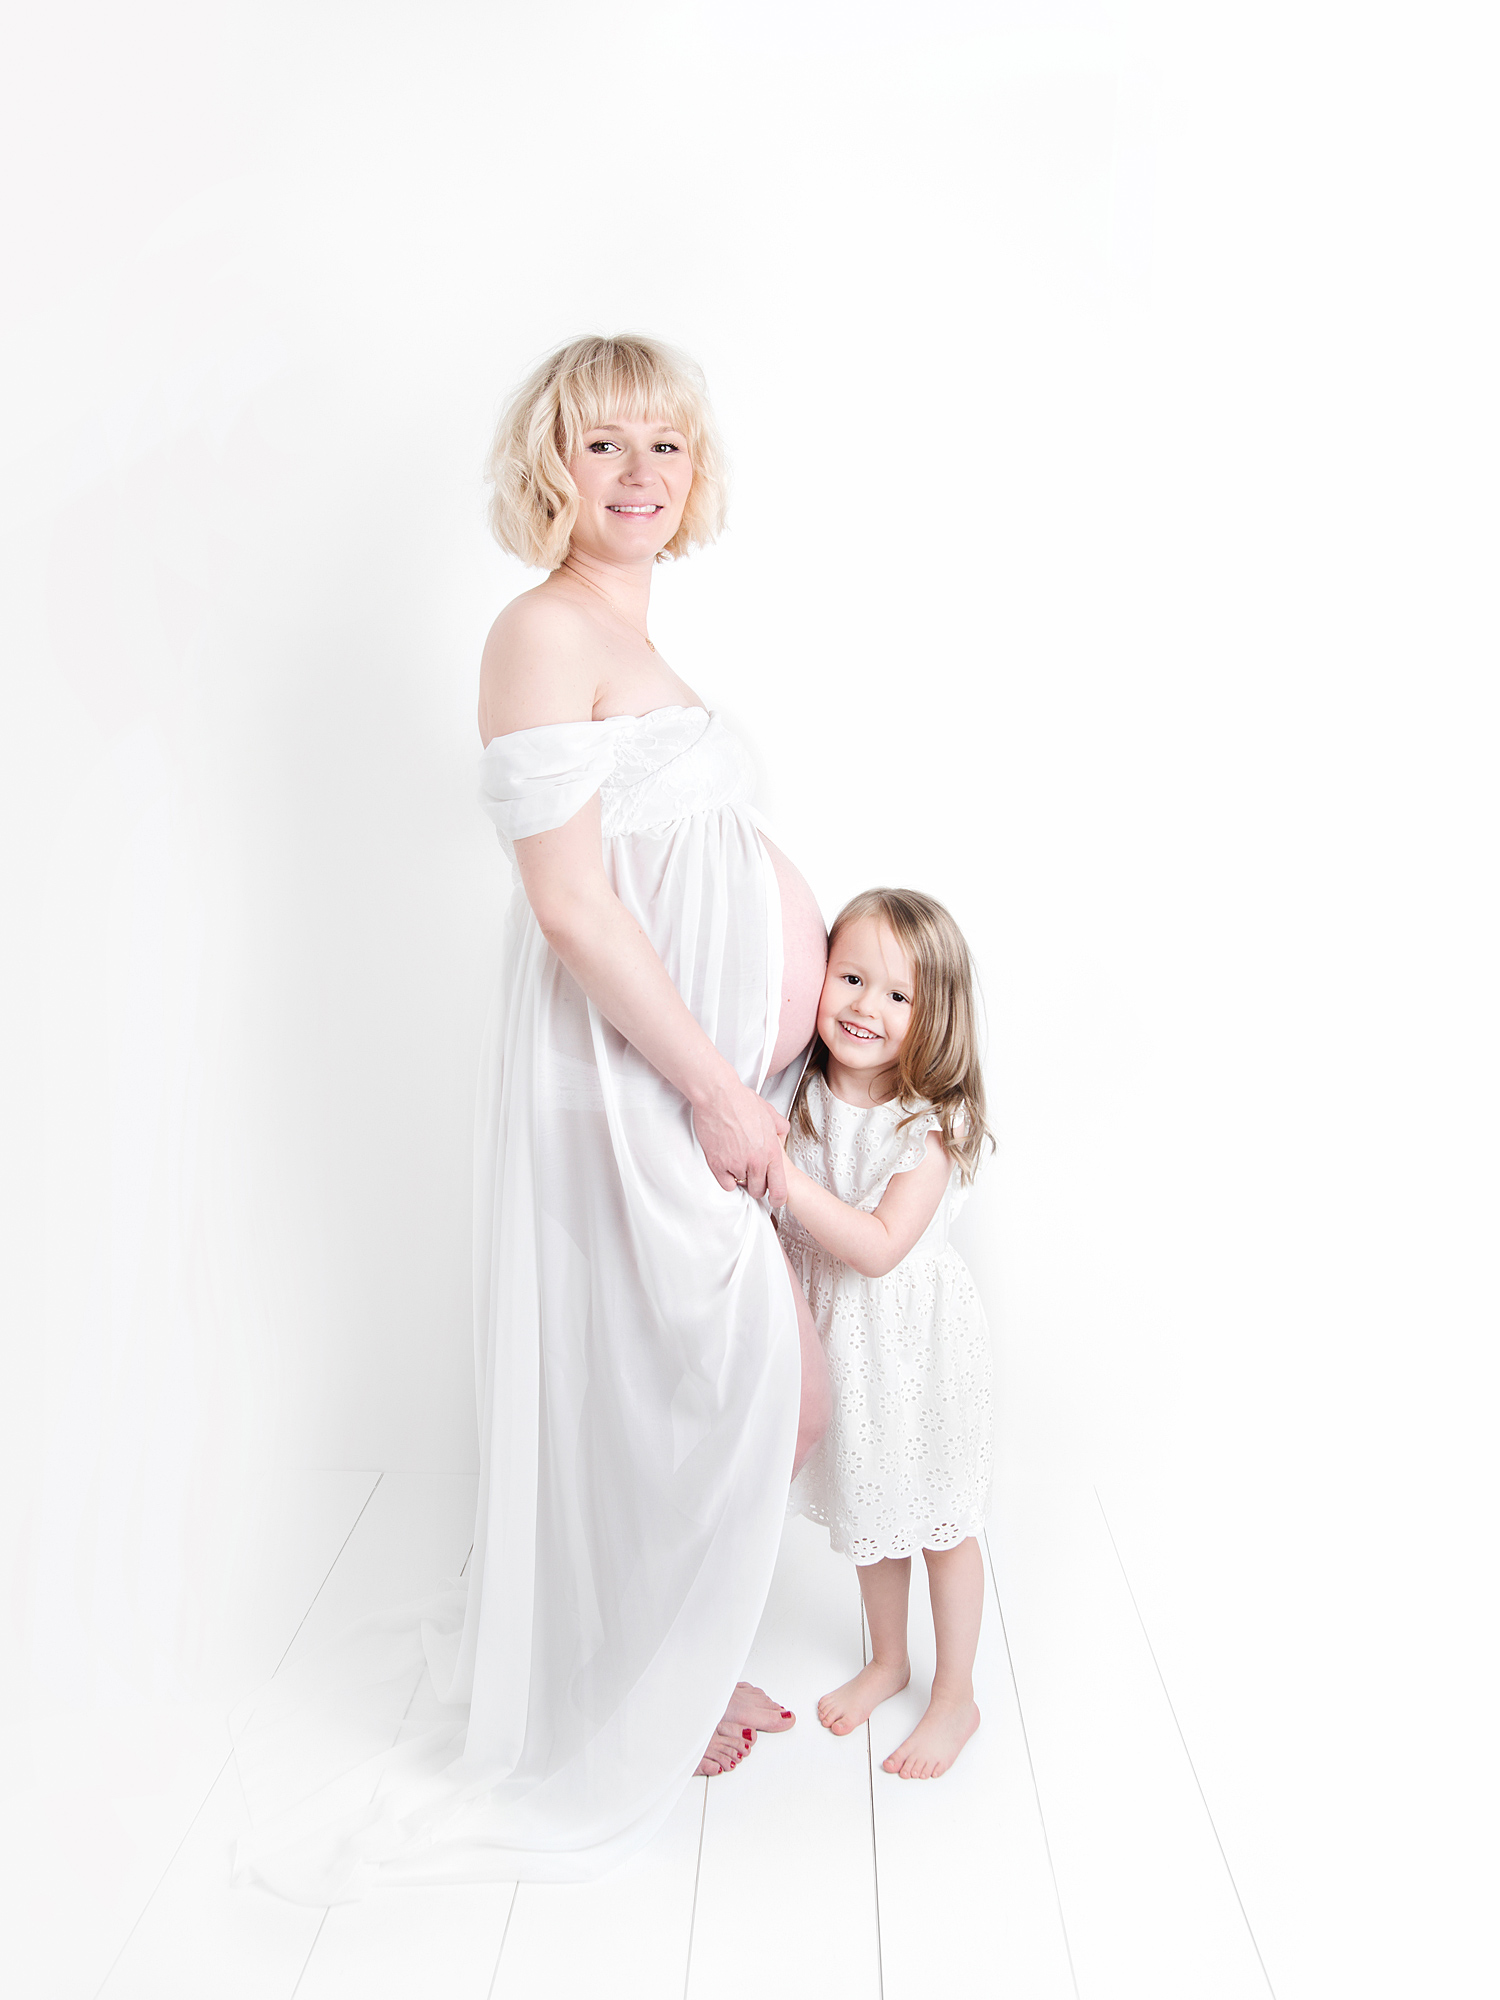 mum and four year old daughter pregnancy maternity photography edinburgh midlothian